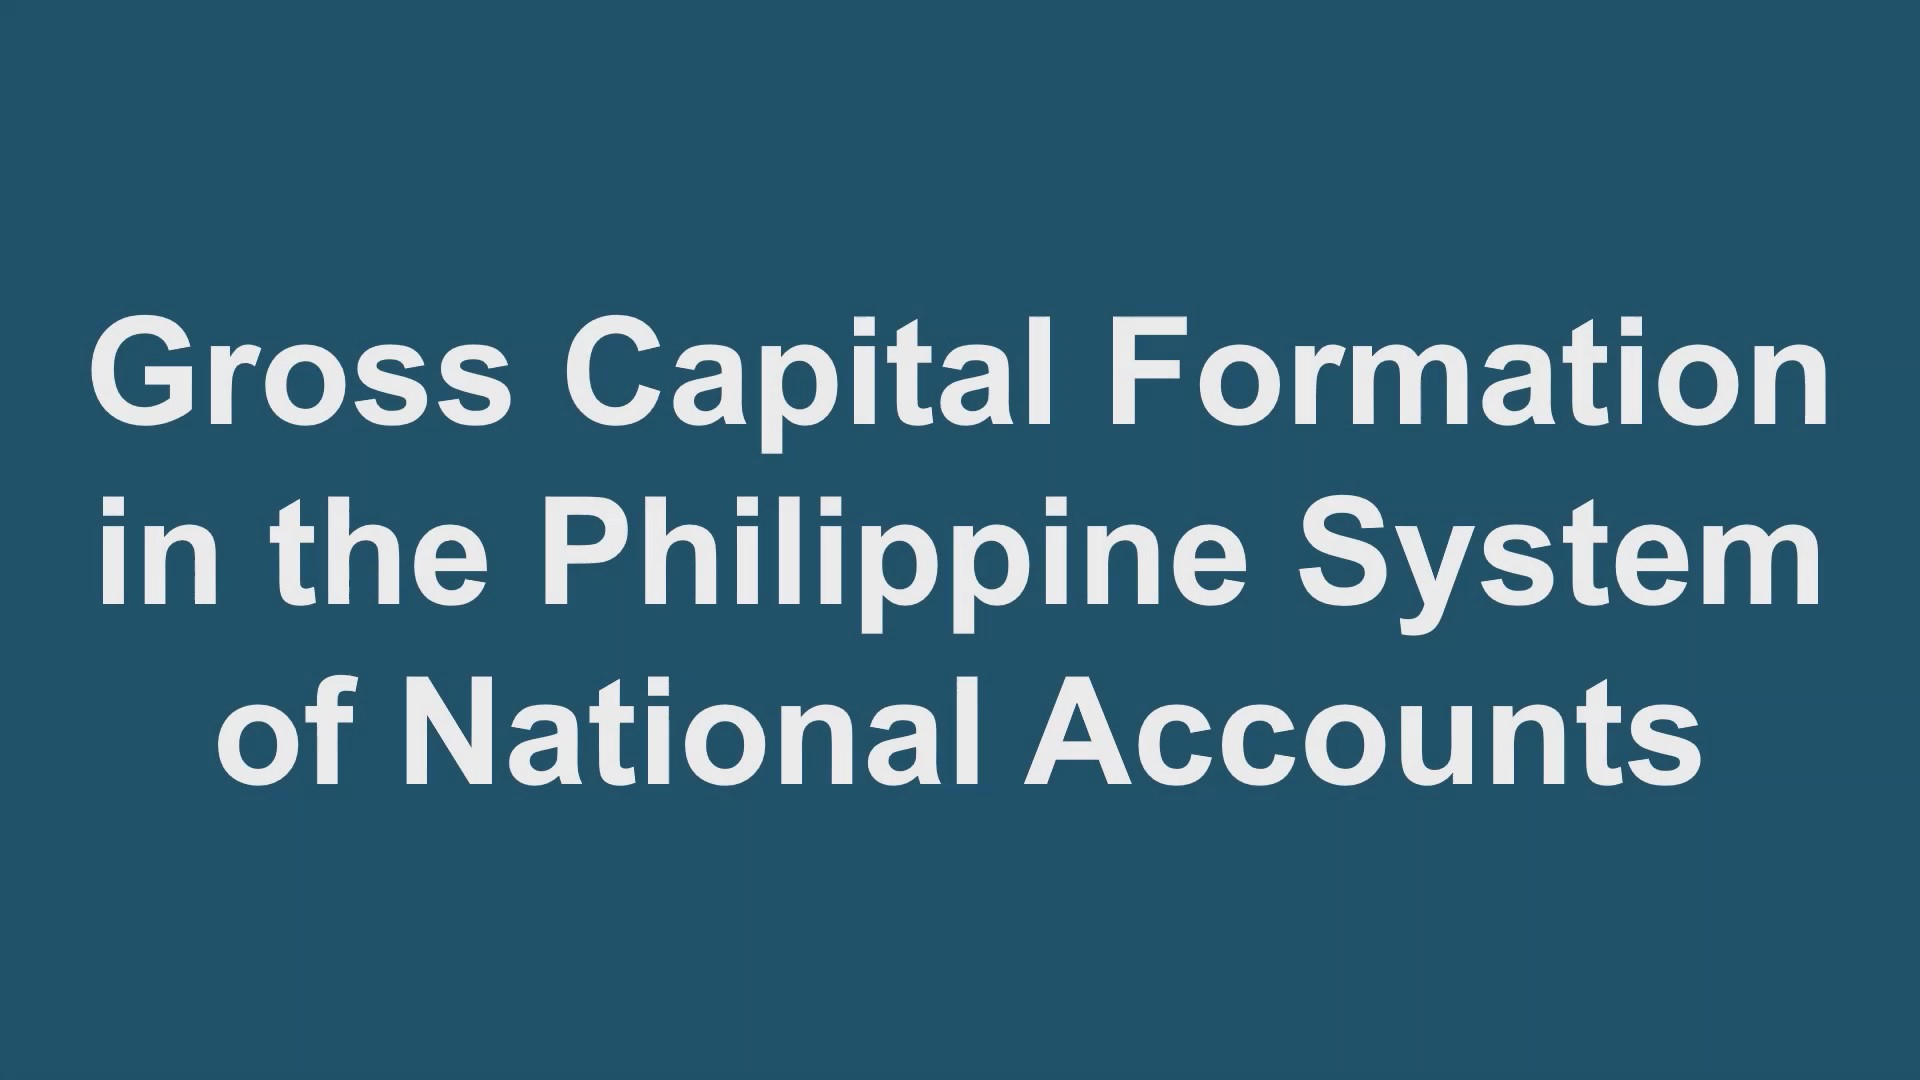 Gross Capital Formation in the Philippine System of National Accounts